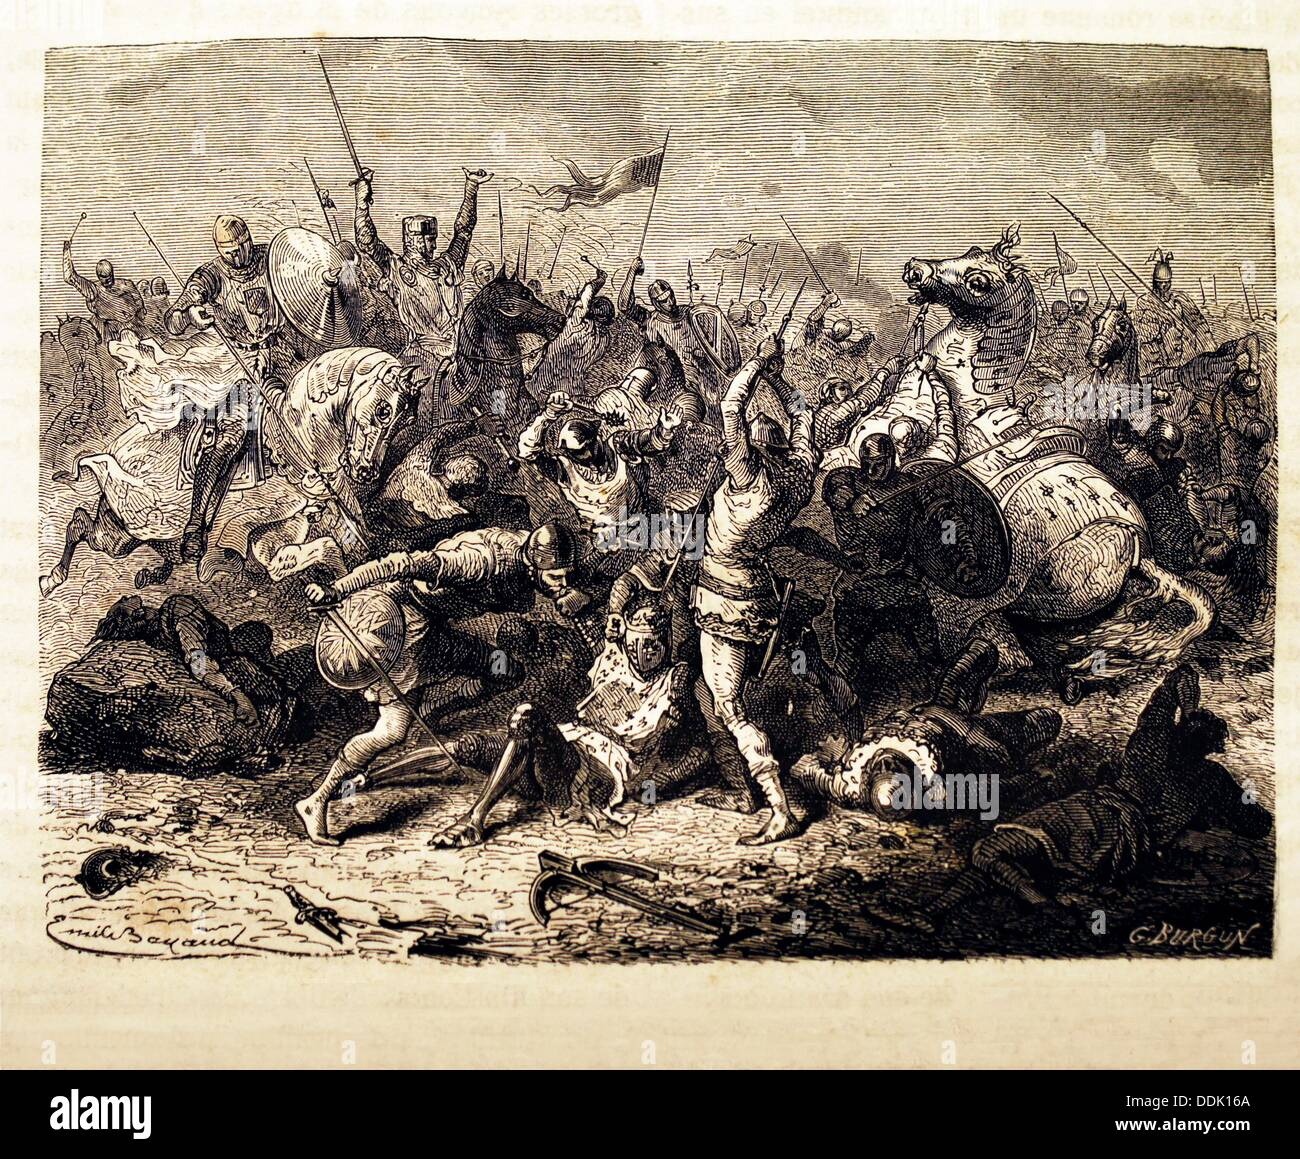 France-History- The Battle of Bouvines, 27 July 1214, was a conclusive  medieval battle ending the twelve year old War of